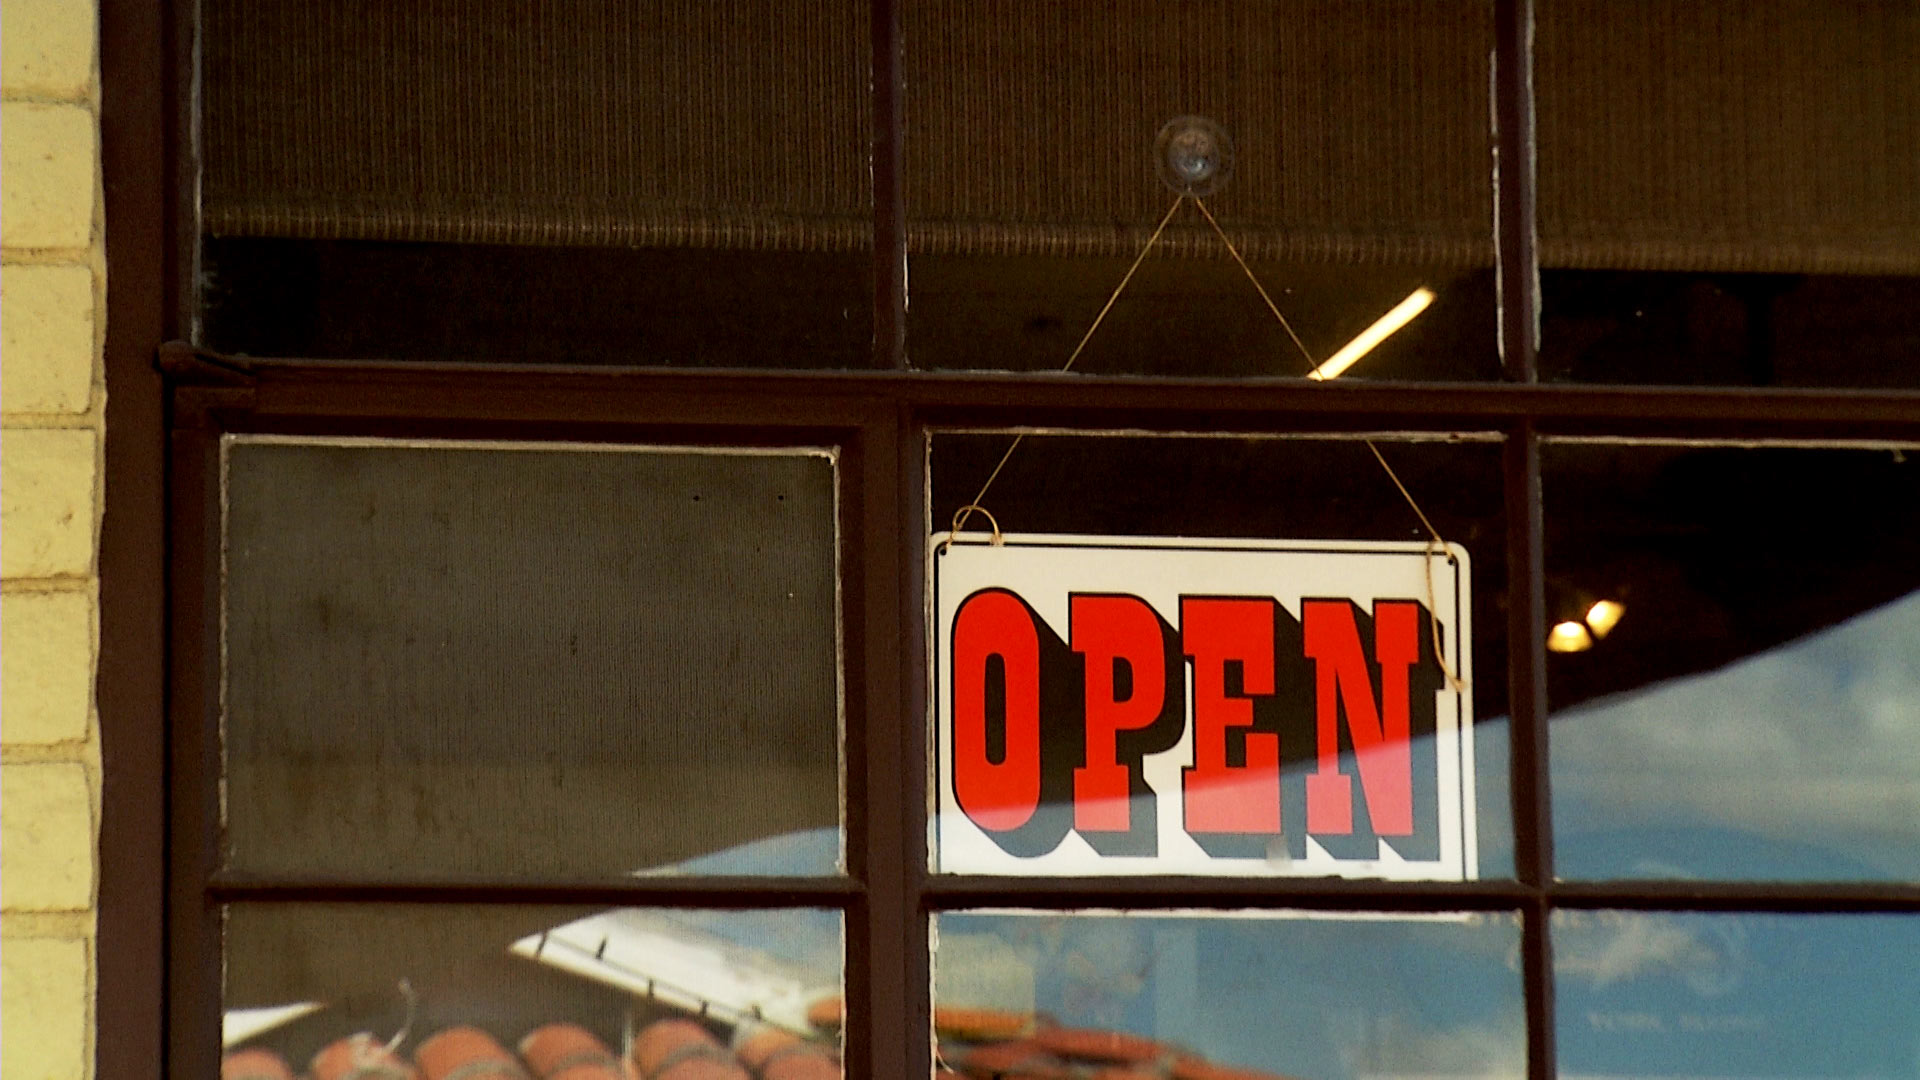 An open sign hangs in the window of a business in Patagonia.